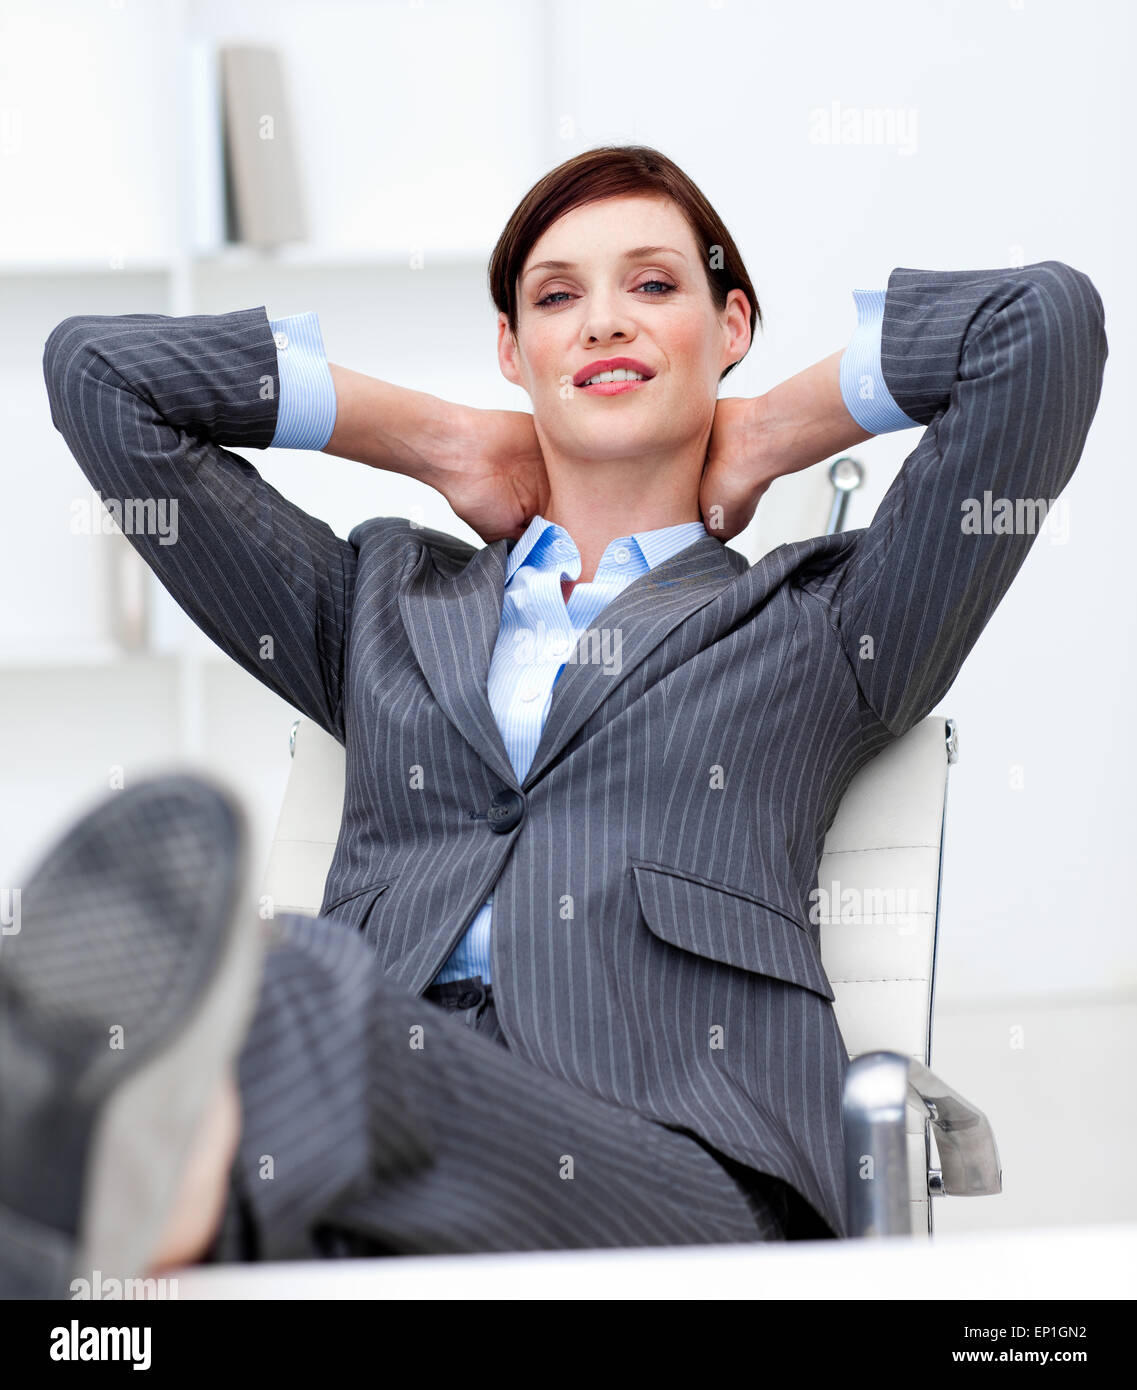 office chair leaning to one side hanging stand canada lazy suit stock photos and